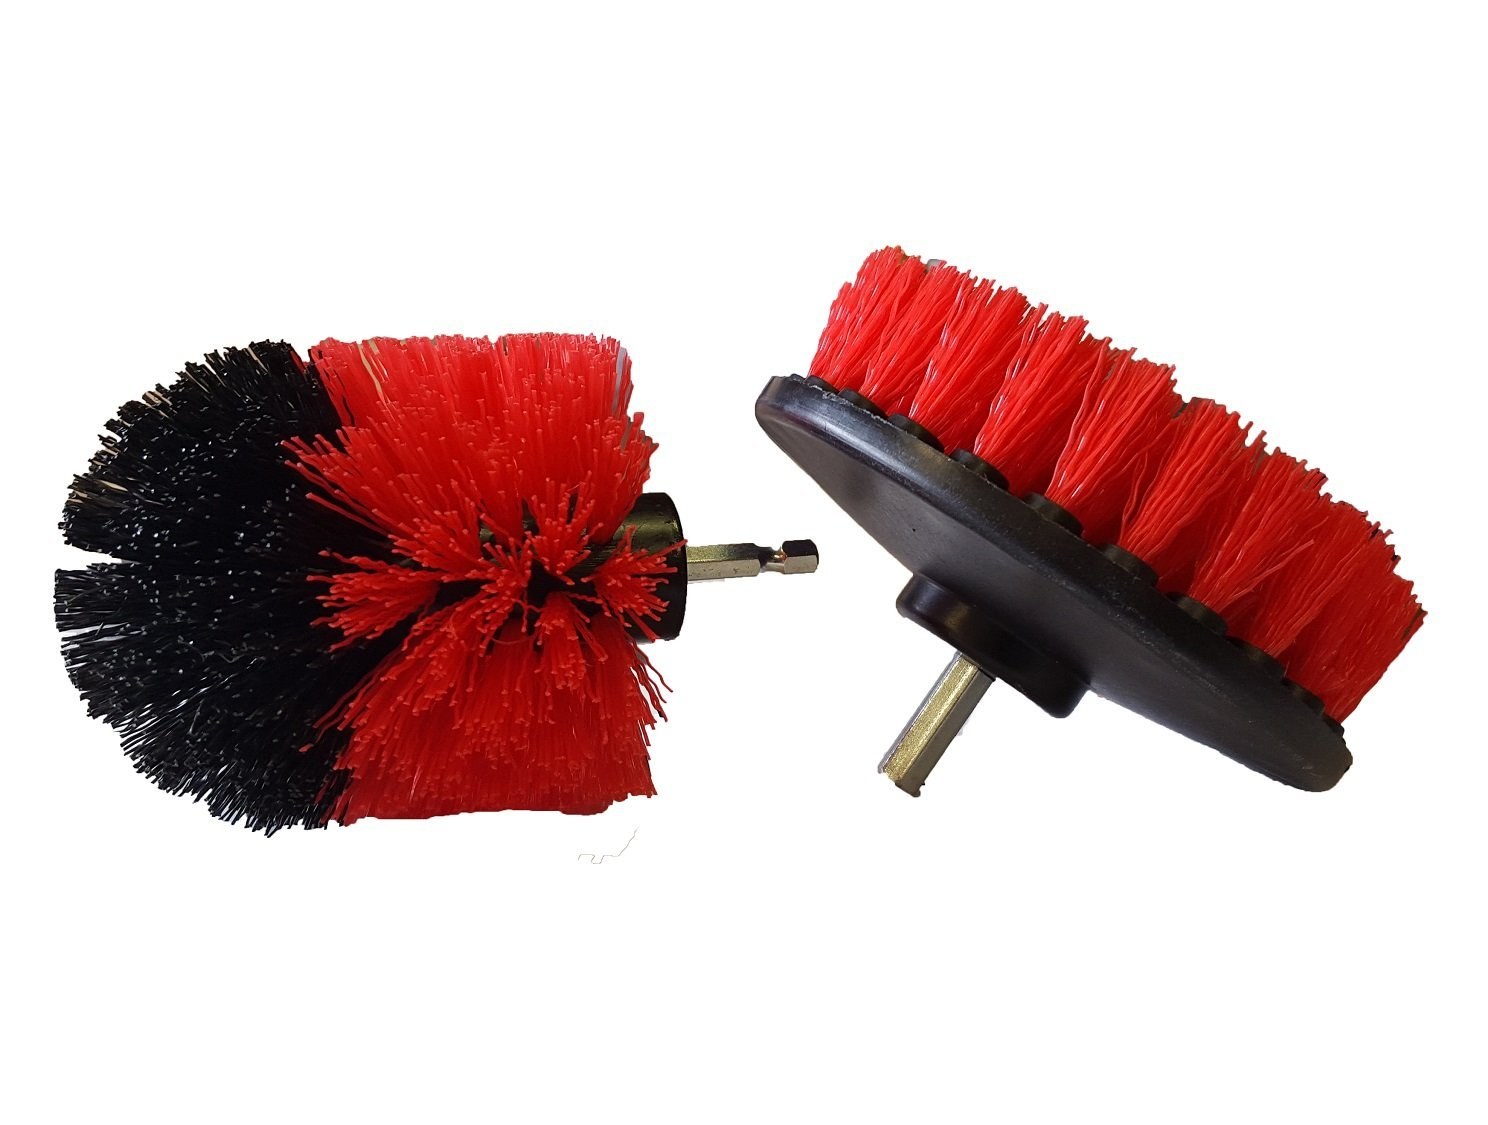 Bring It On Cleaner Drill Brush Set, Tile and Grout Cleaner Scrubber, Nylon Brush Drill Attachment, Tub and Shower Cleaning Brush